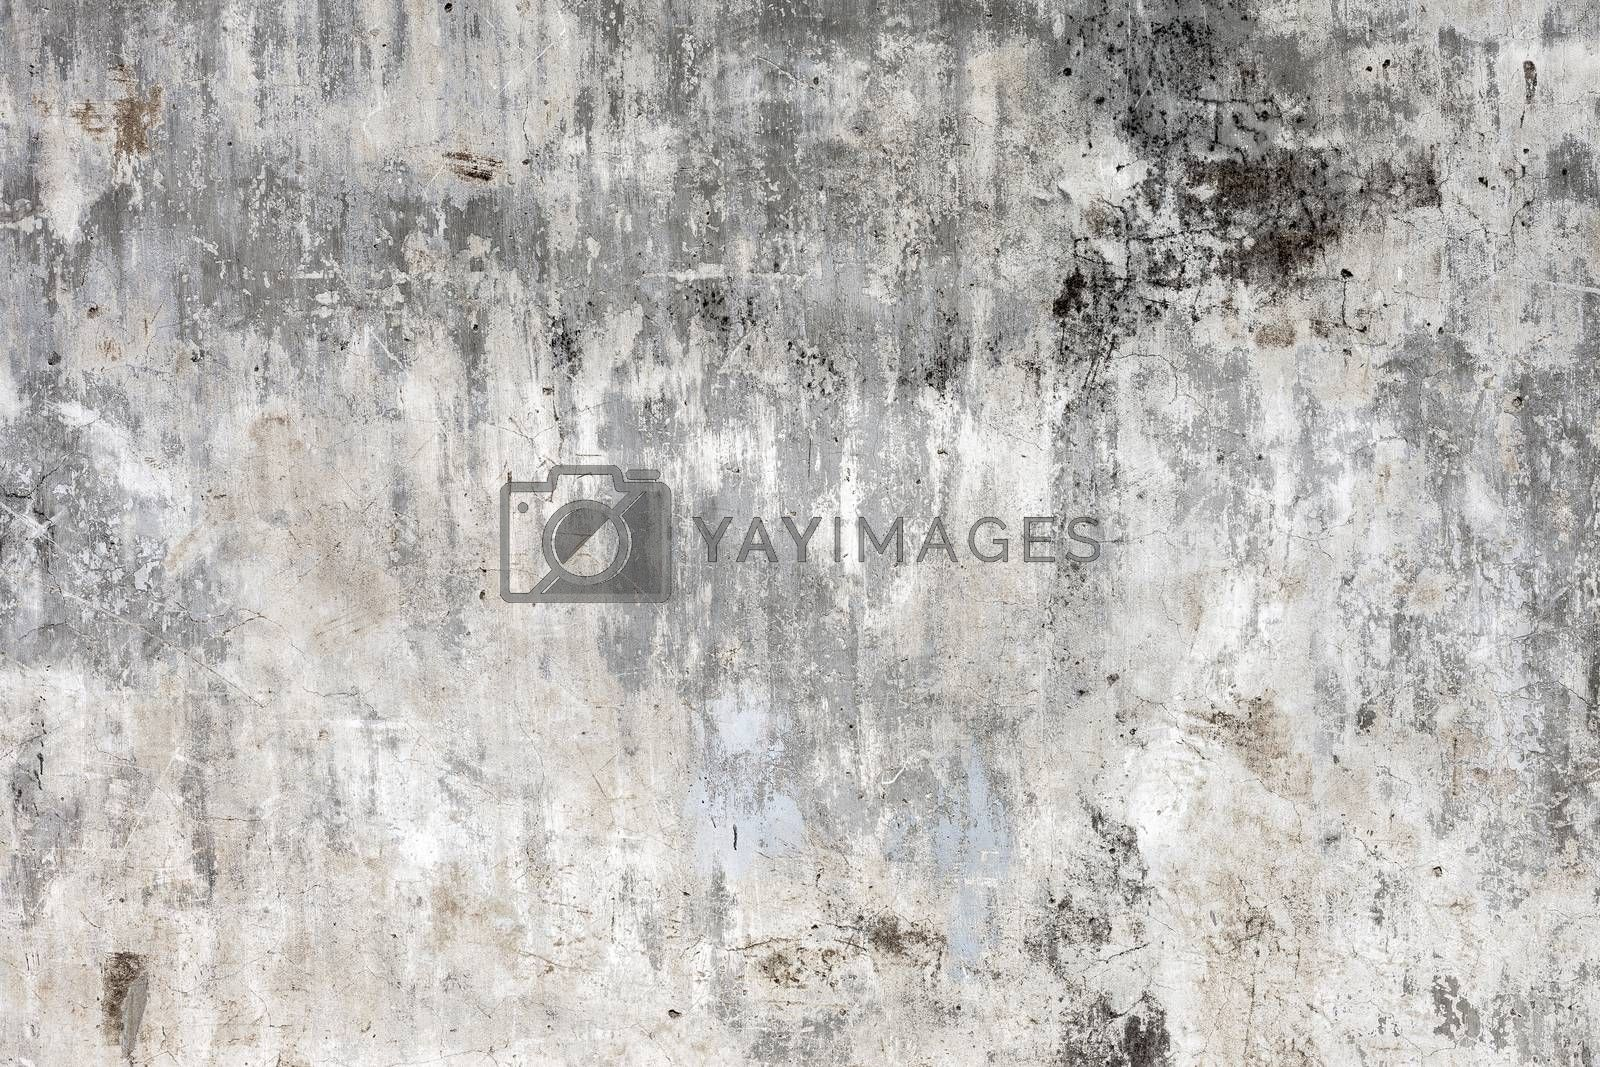 Grunge vintage background cement old texture wall